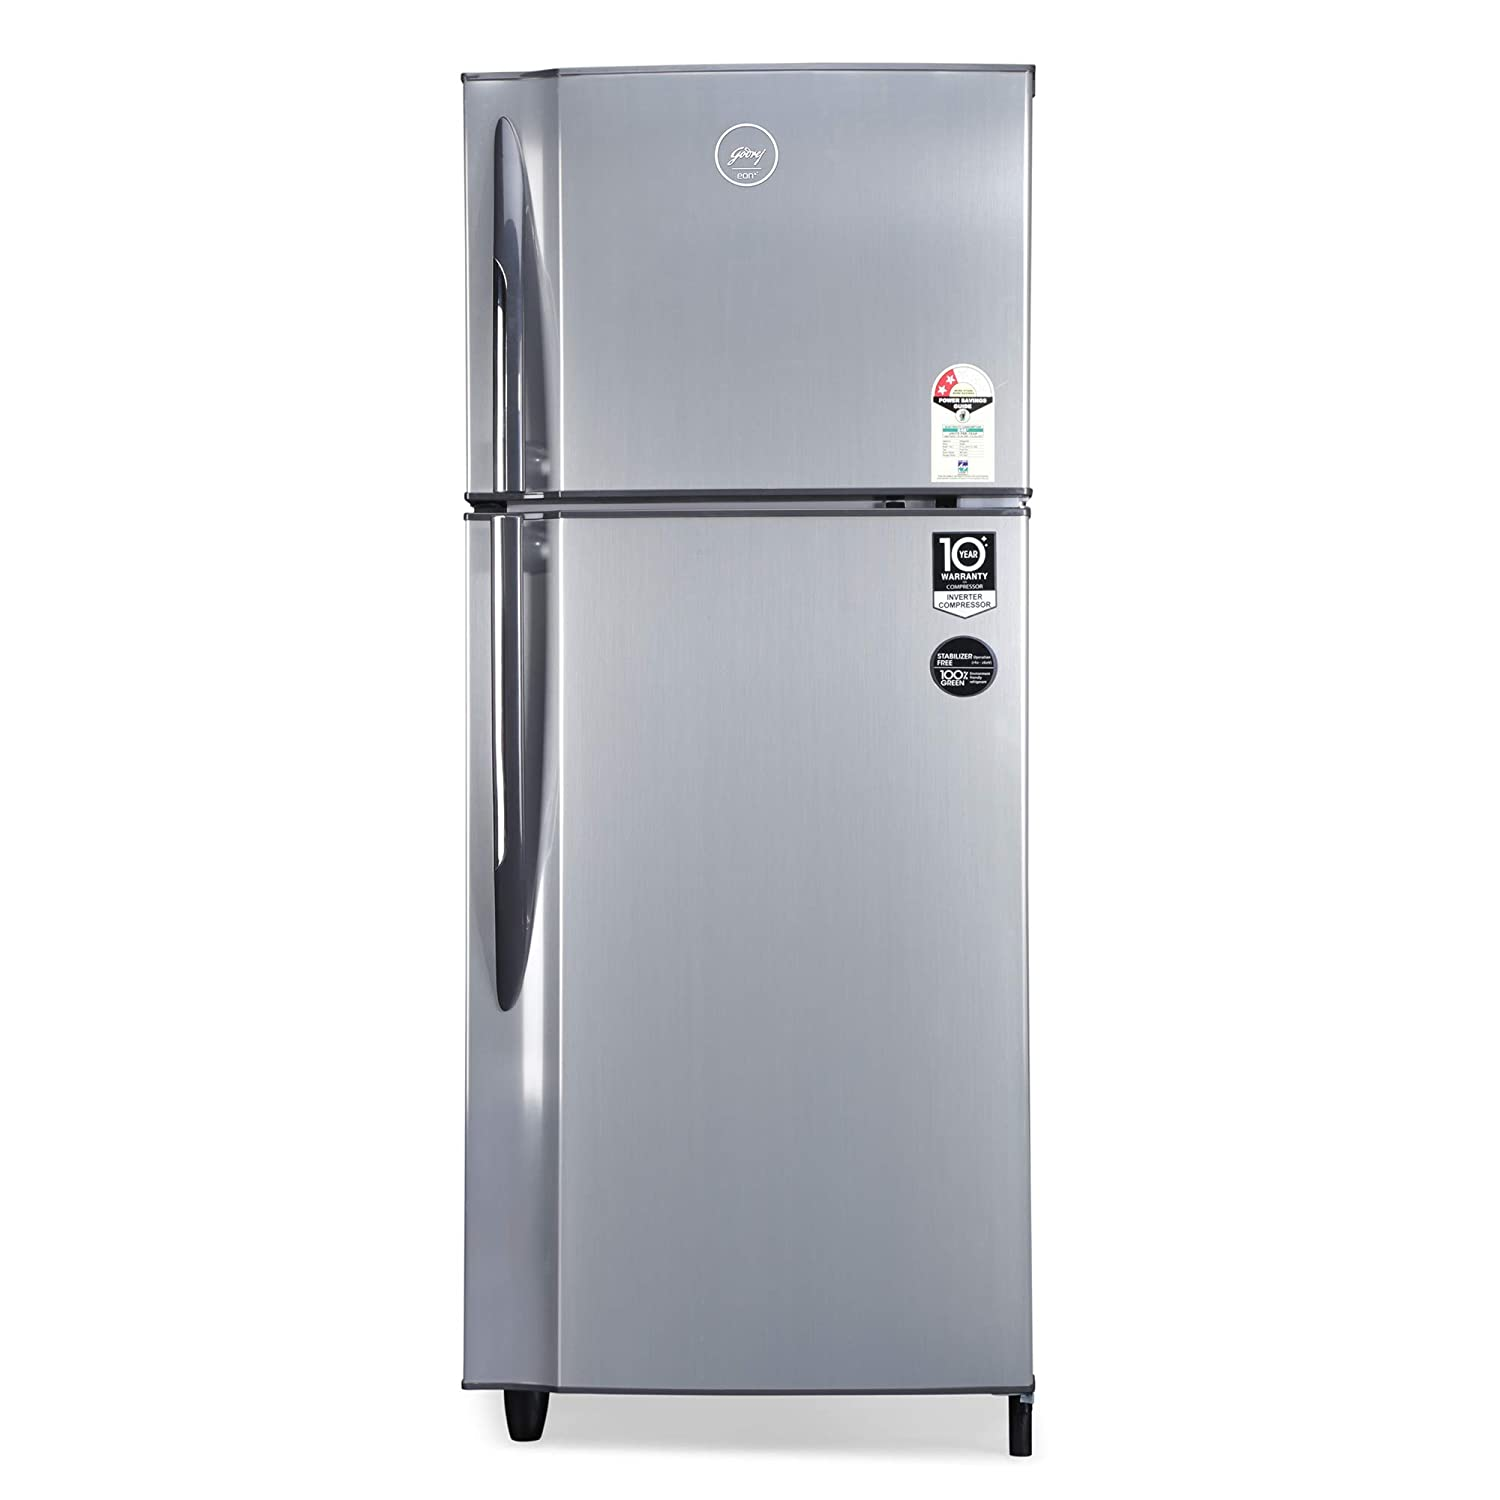 Godrej 236 L 2 Star Inverter Frost Free Double Door Refrigerator  RF EON 236B 25 HI SI ST, Stainless Steel